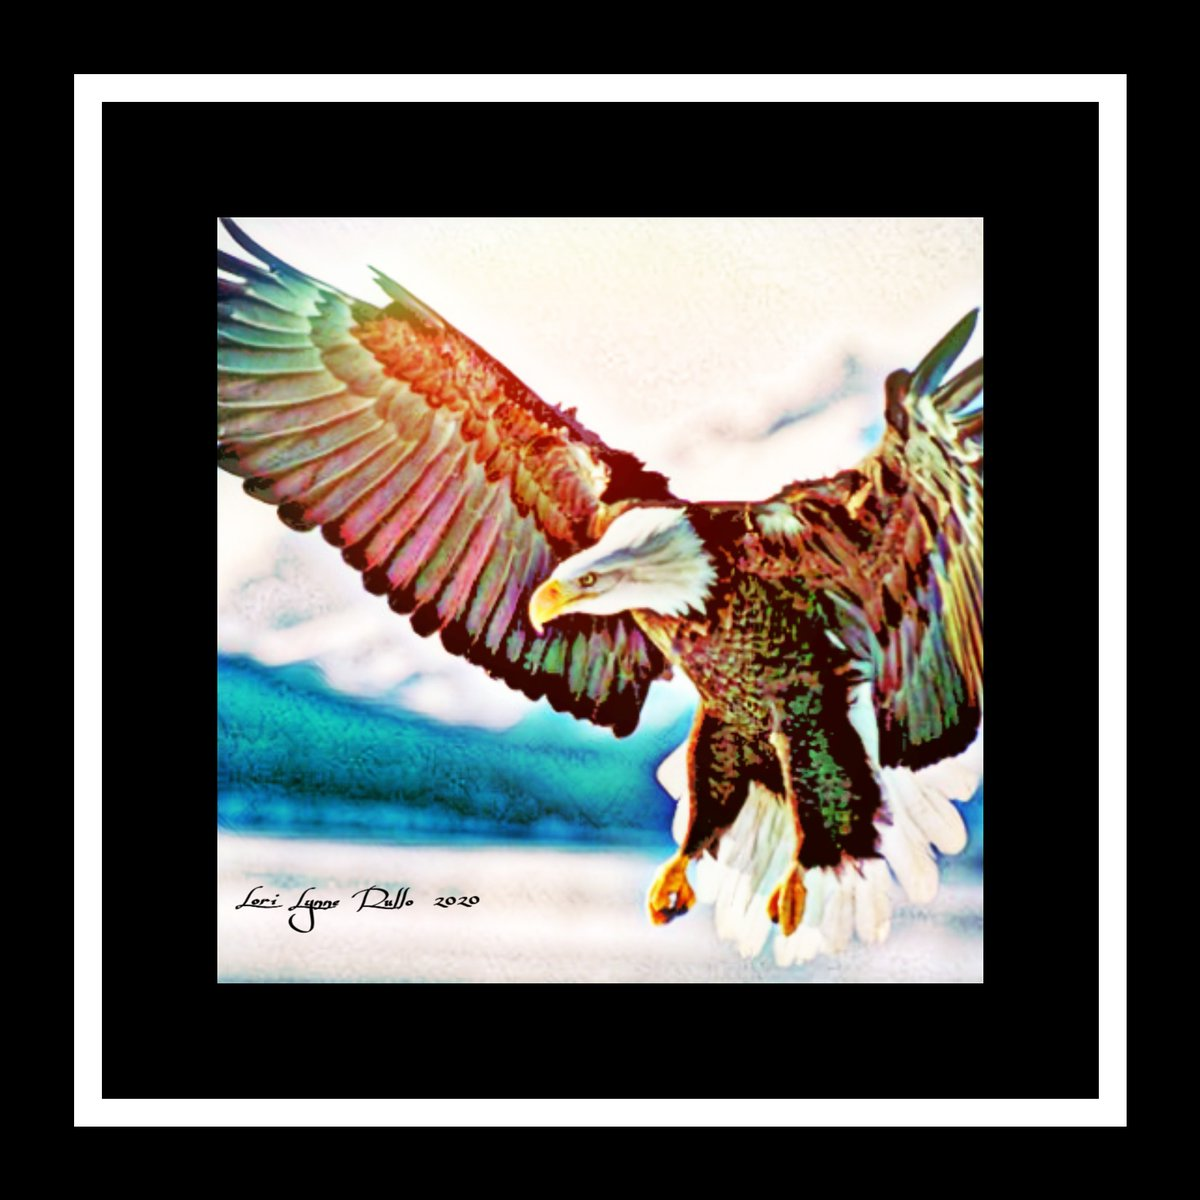 Those who hope in the LORD will renew their strength. They will soar on wings like eagles; they will run and not grow weary, they will walk and not be faint.  (Isaiah 40:31)  I give oath to my country. #ArtForGodsGlory #ChristianArtist #GodInNature #TakeTheOath https://t.co/LGW7CecIaT